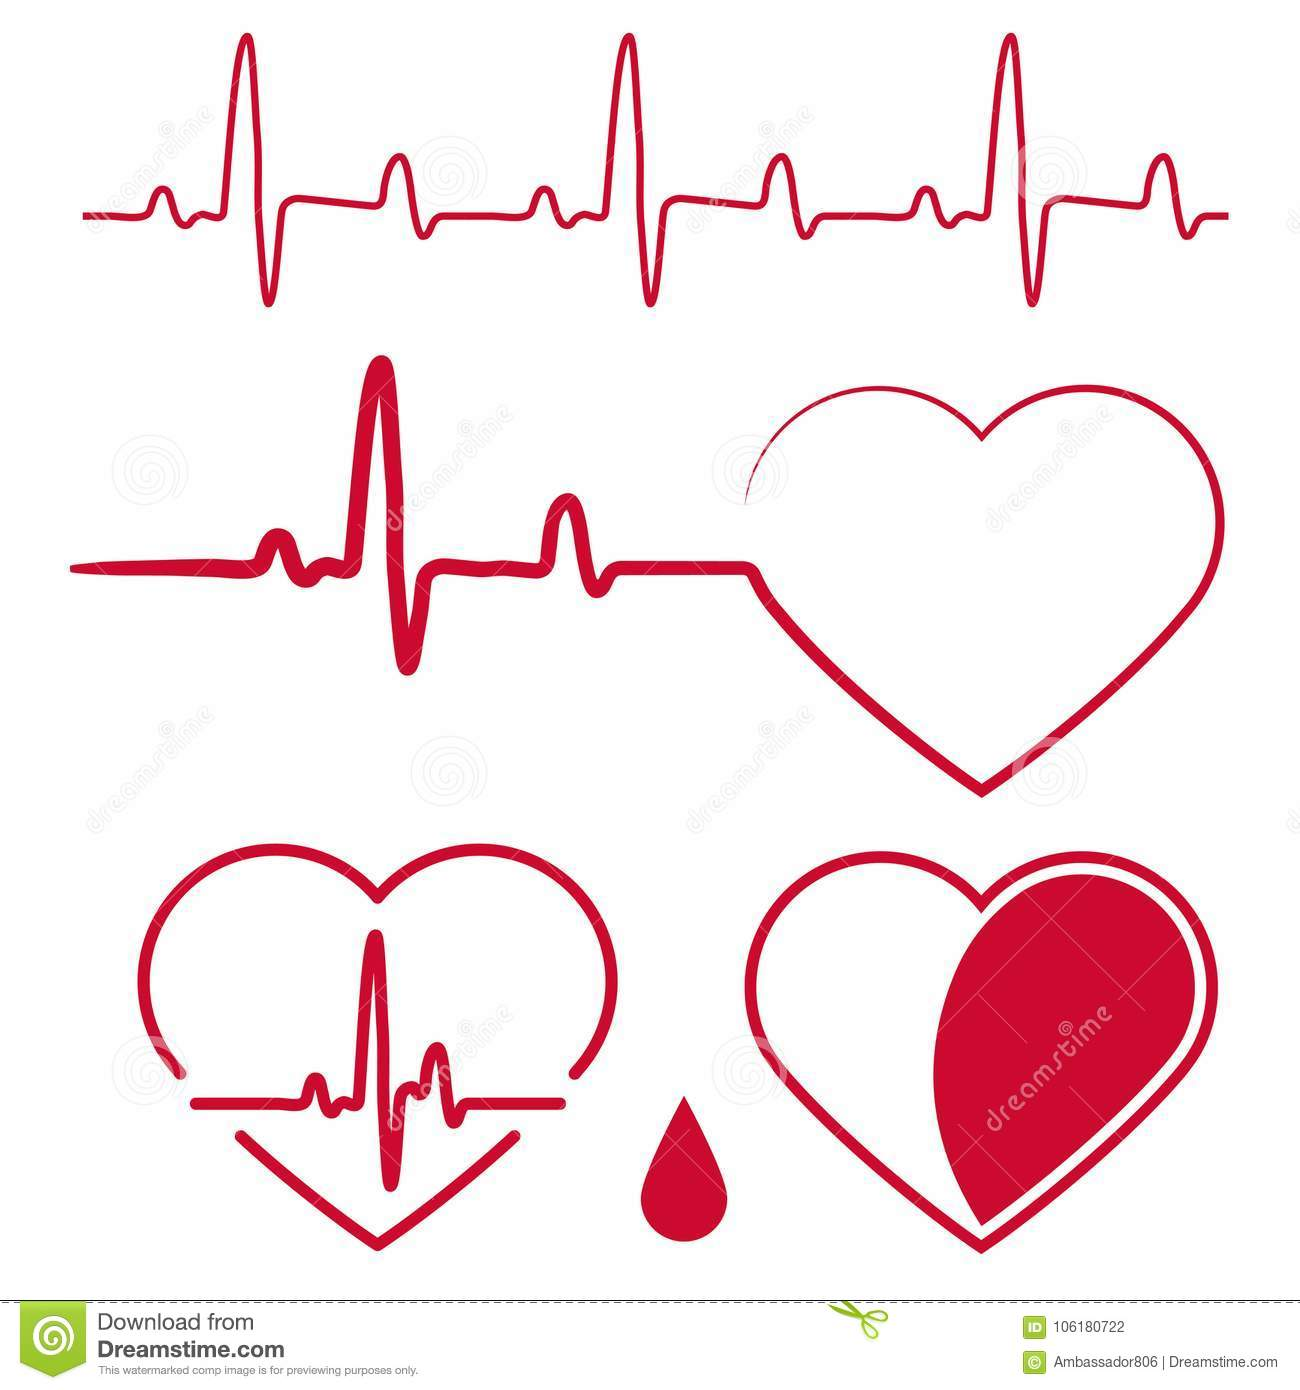 Heart cardiogram waves,Heartbeat Graph Red sign, One line